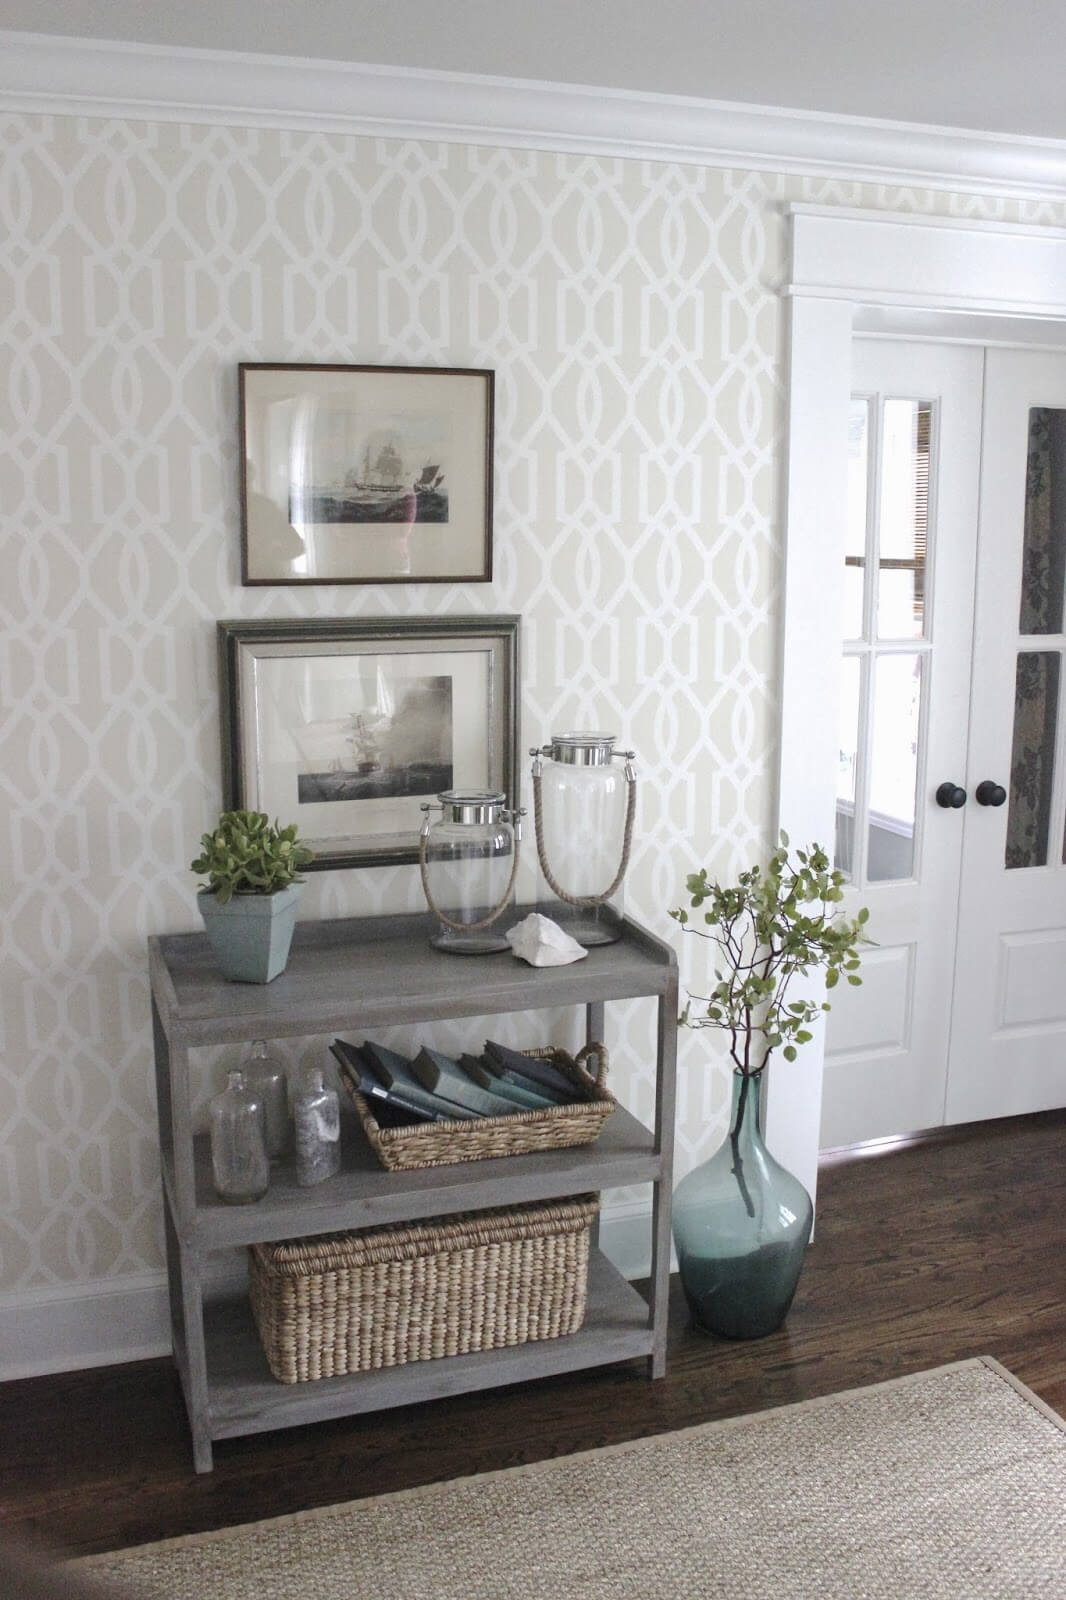 Three Shelf Neutral-Colored Rustic Table